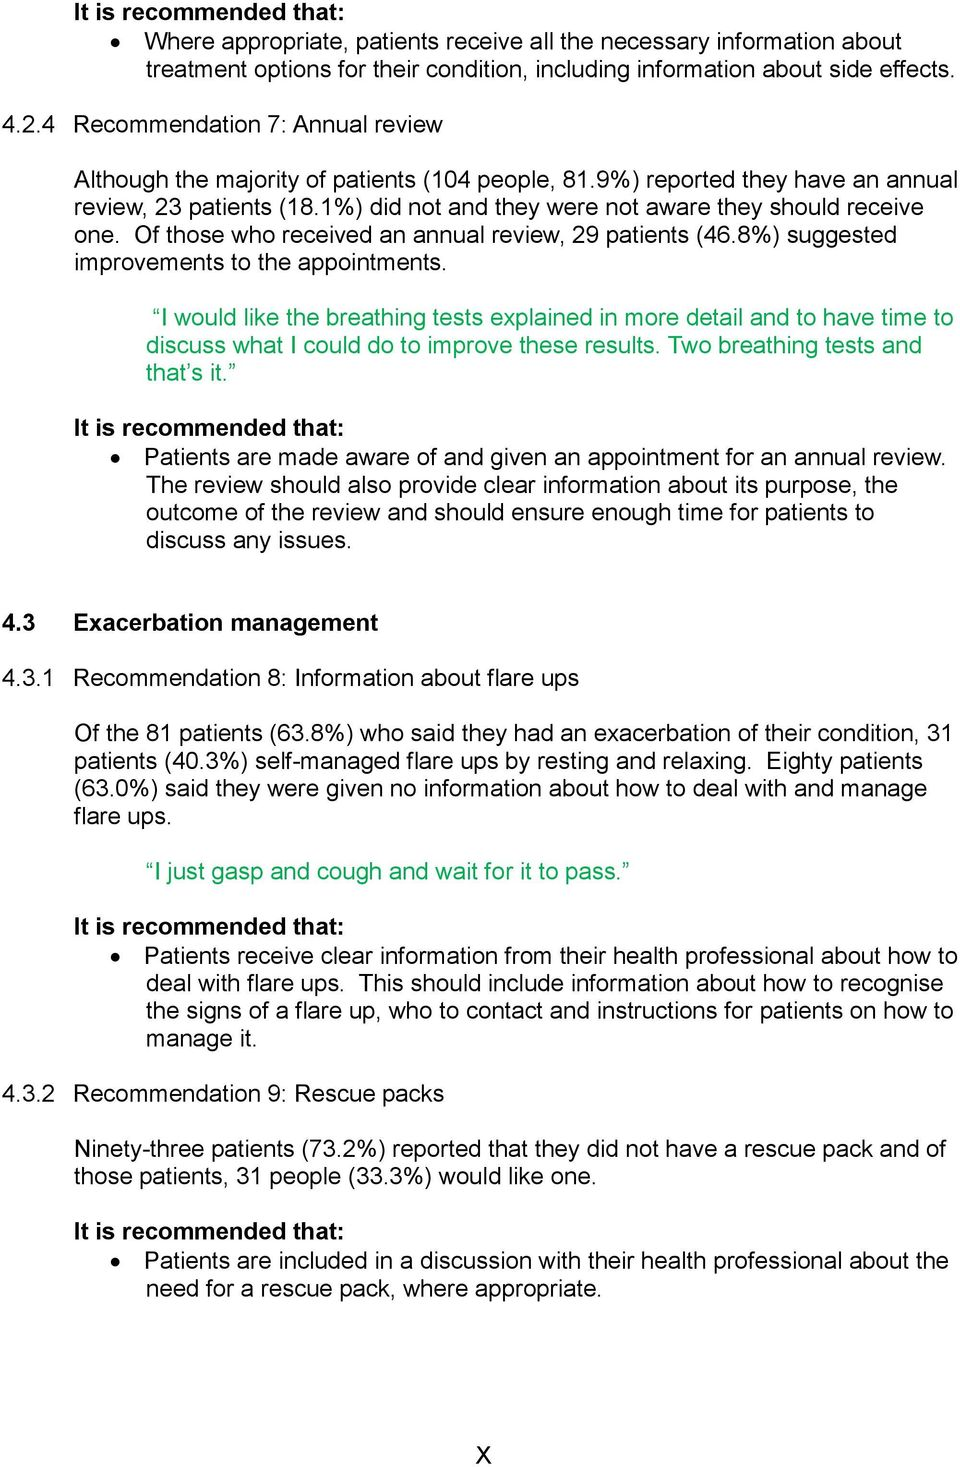 1%) did not and they were not aware they should receive one. Of those who received an annual review, 29 patients (46.8%) suggested improvements to the appointments.